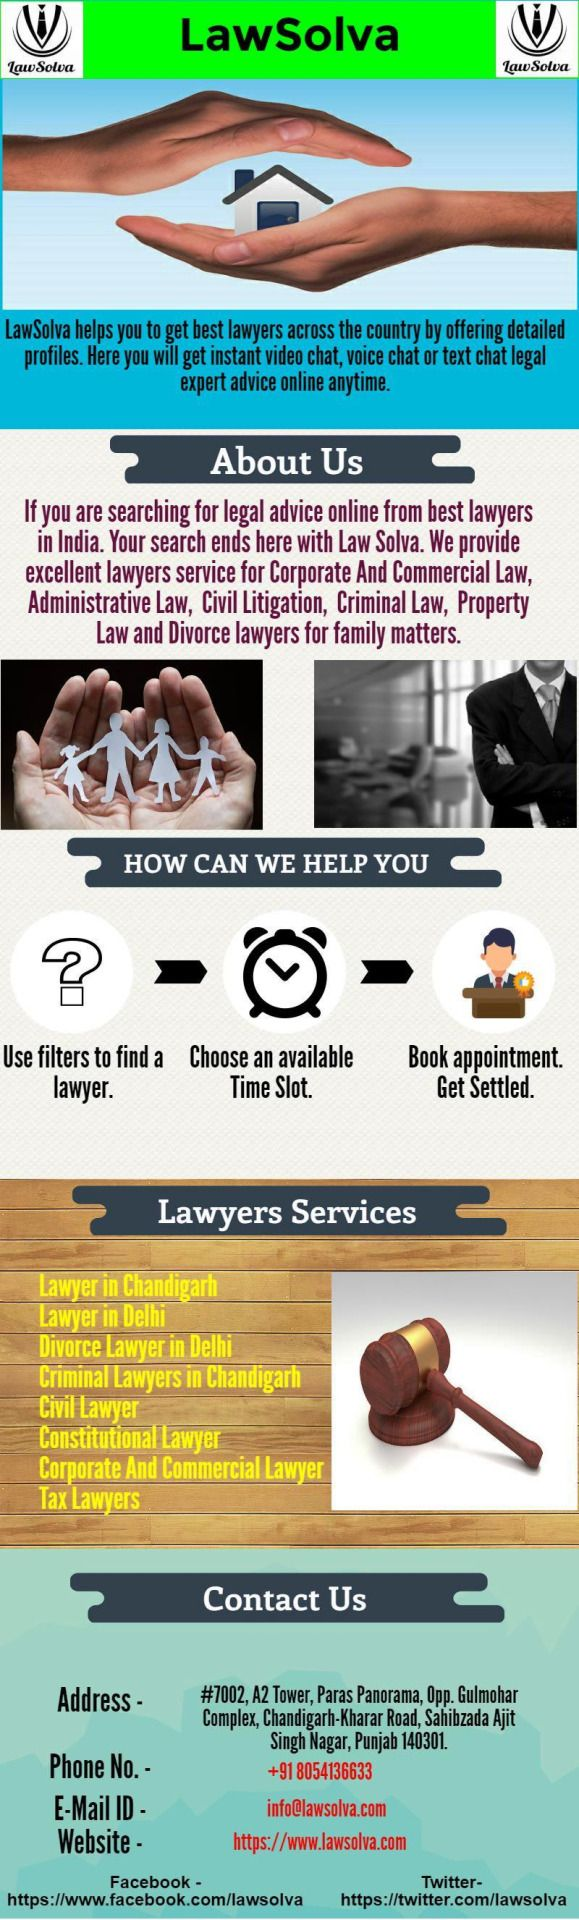 Best Divorce Lawyers in Chandigarh @lawsolva Are you searching for Divorce lawyers in Chandigarh for divorce issues? Lawsolva aim to provide best divorce lawyers in the city with more than 20 years of experience.